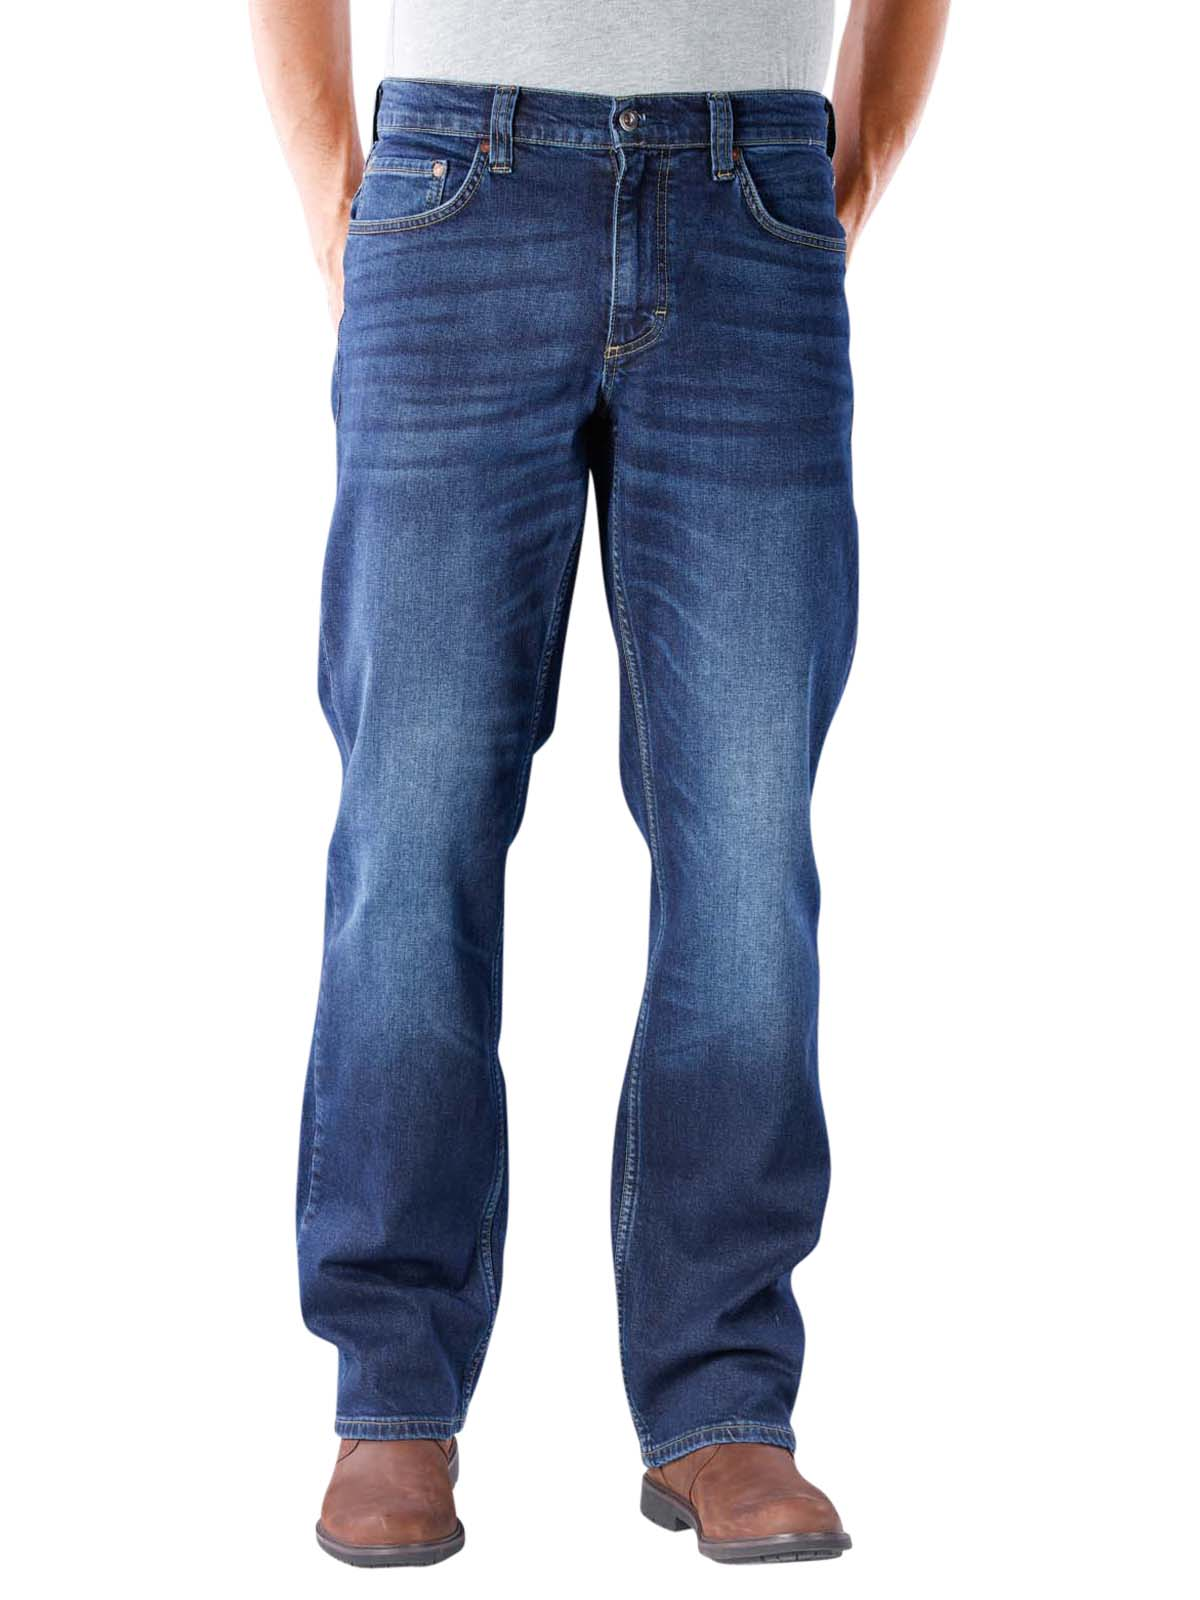 e6b21aa05301 McJeans.ch - Sofortige Zustellung | Mustang Big Sur Jeans Straigh Fit 882 |  Kostenlose Lieferung